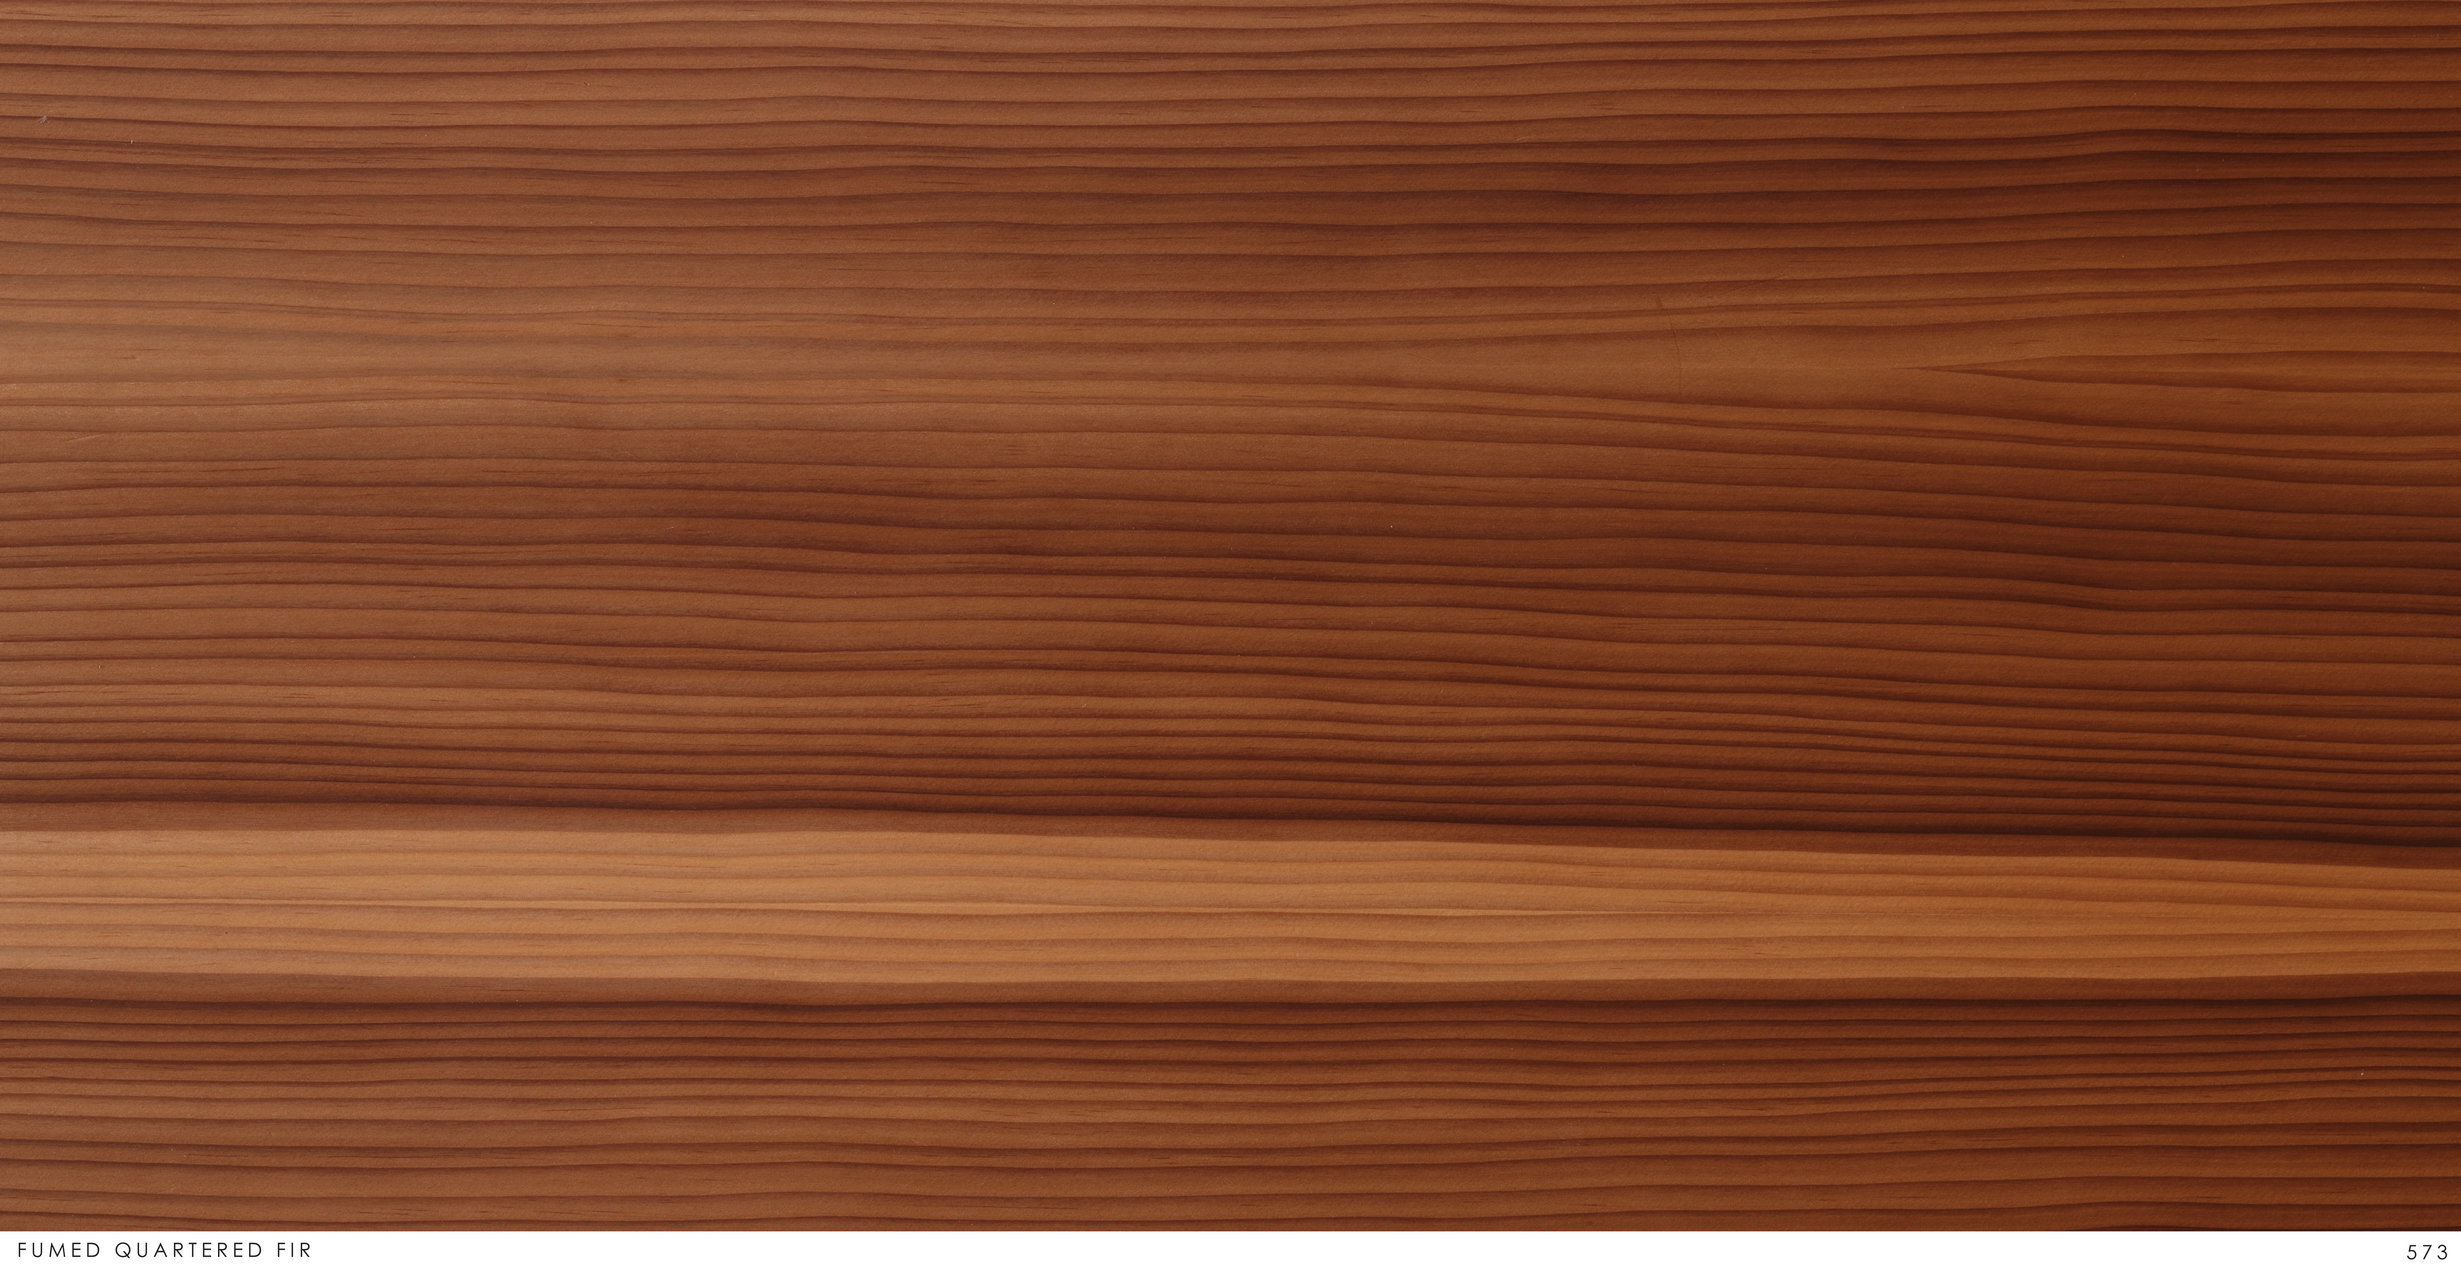 FUMED QUARTERED FIR 573.jpg